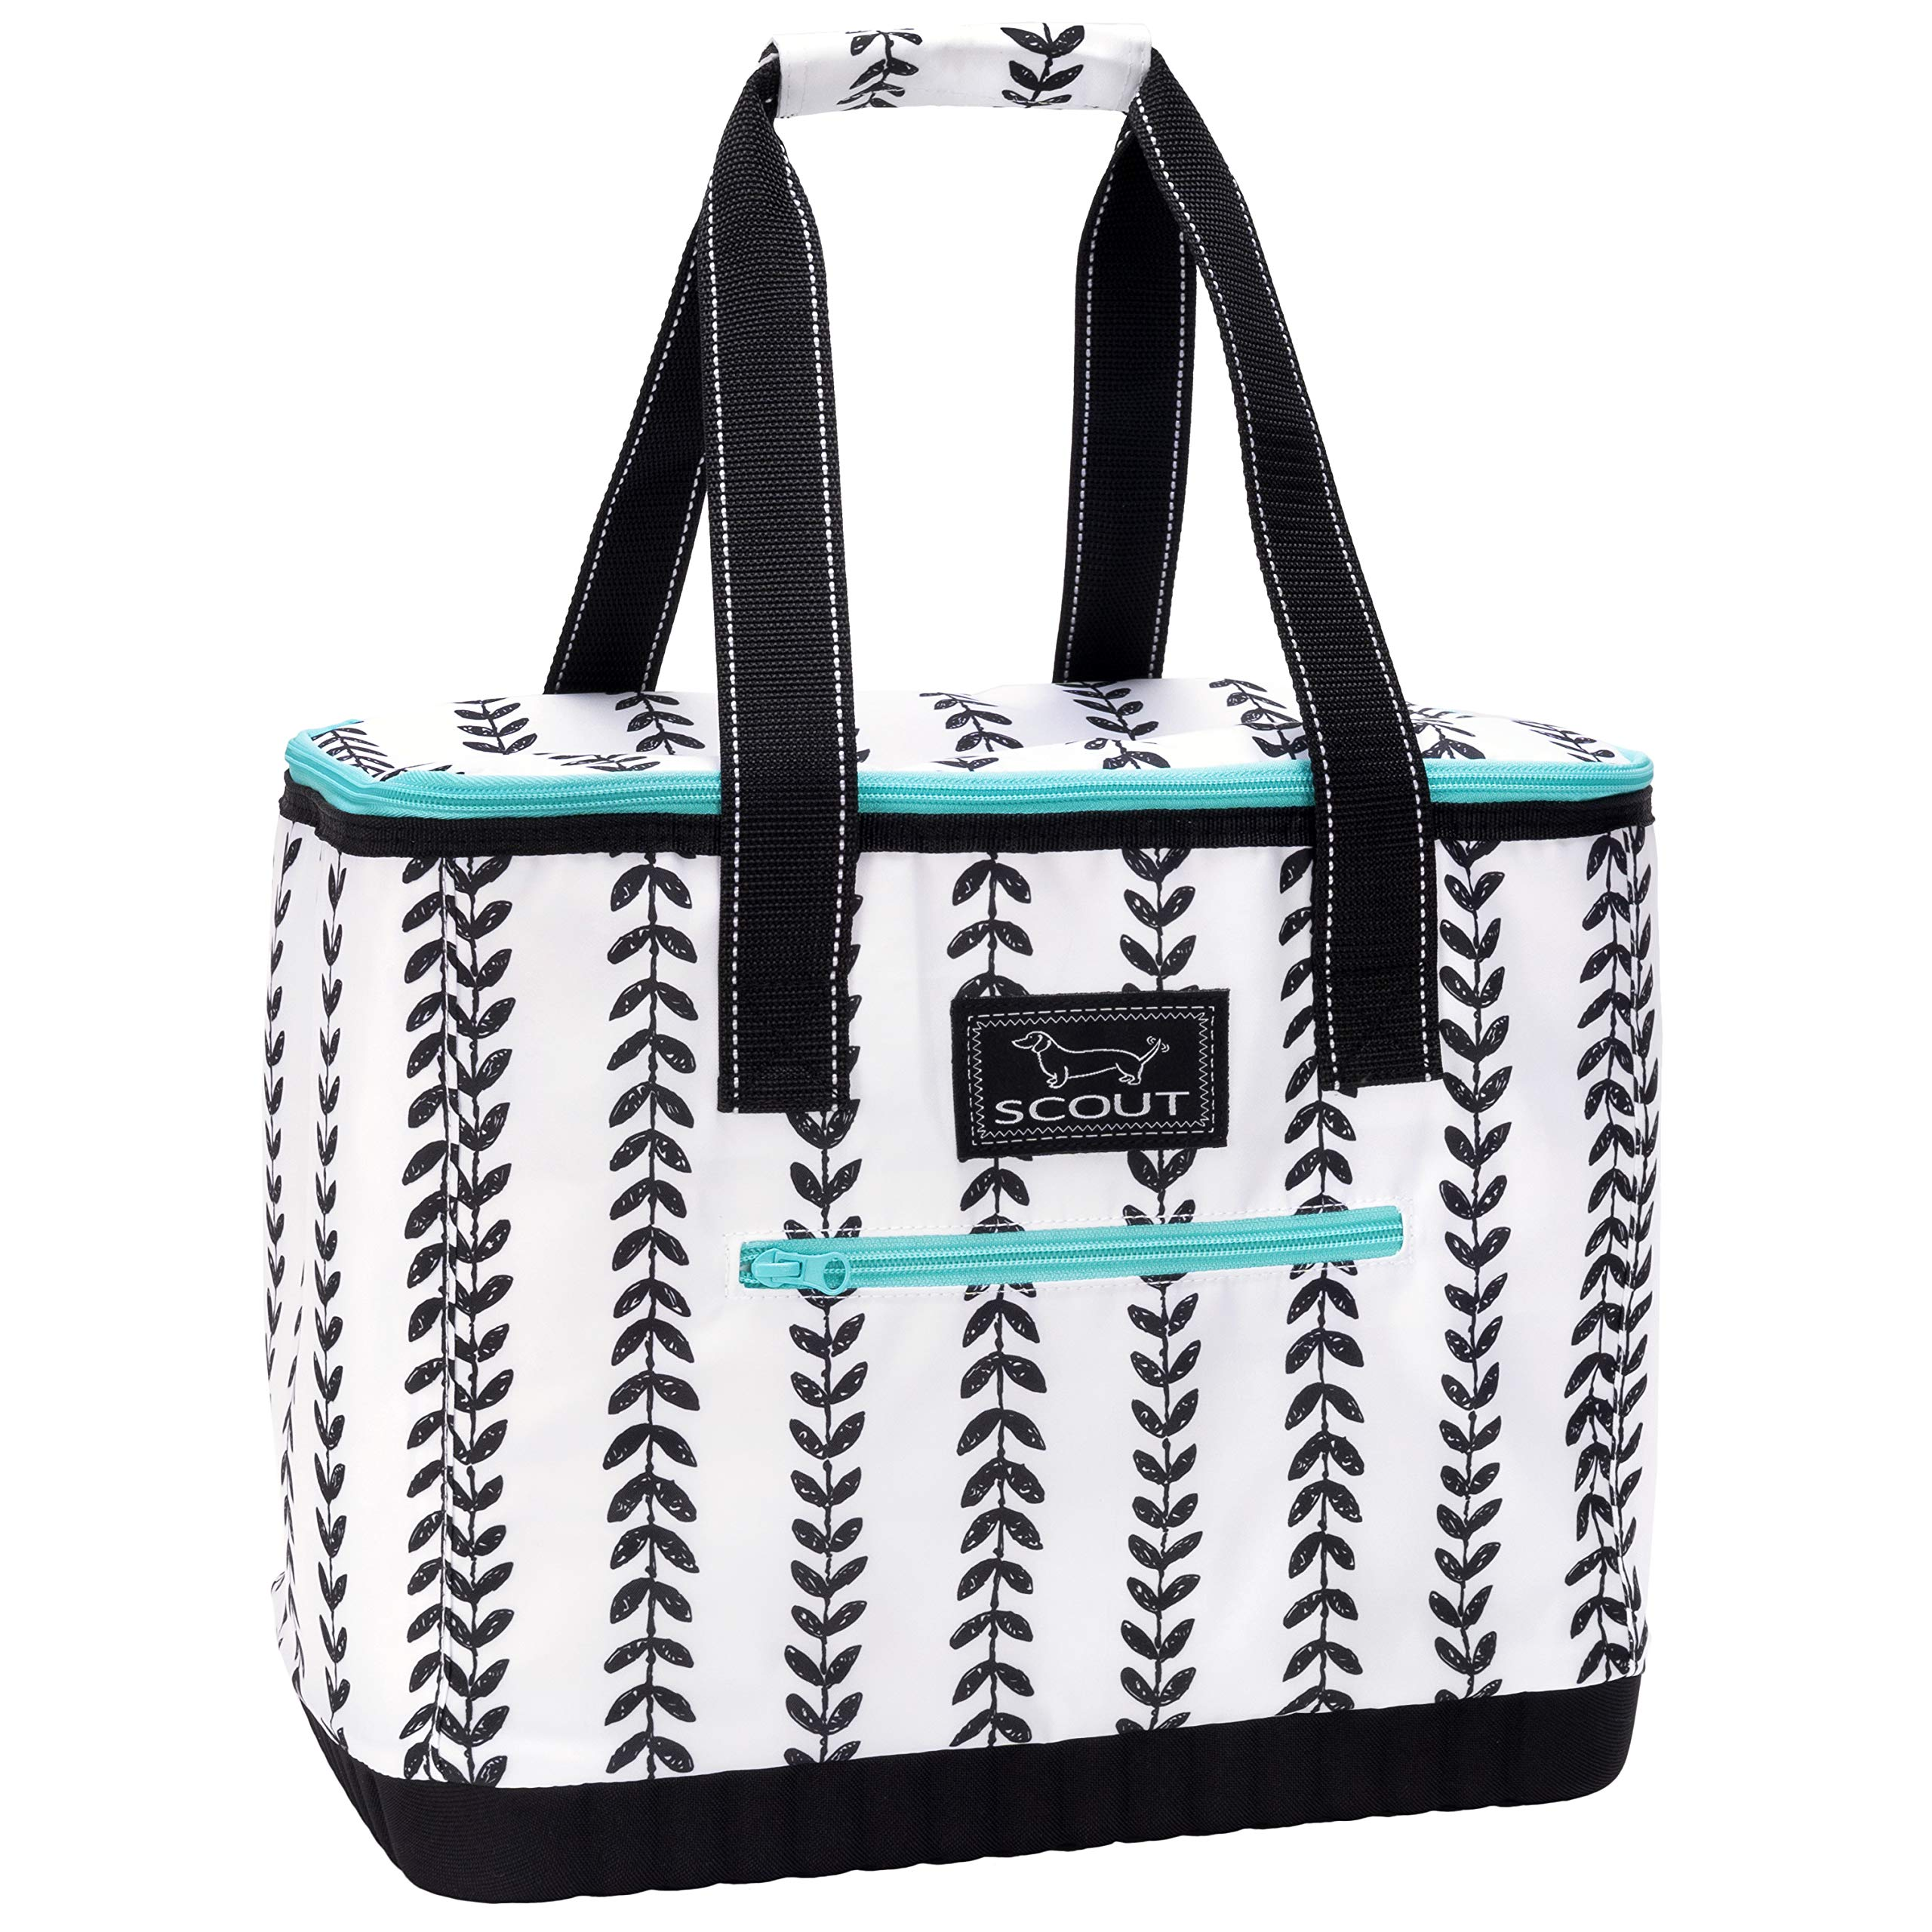 SCOUT The Stiff One Cooler Bag, Insulated Soft Cooler Bag, Leak Proof Large Picnic or Beach Cooler with Hard Bottom (Multiple Patterns Available) by SCOUT